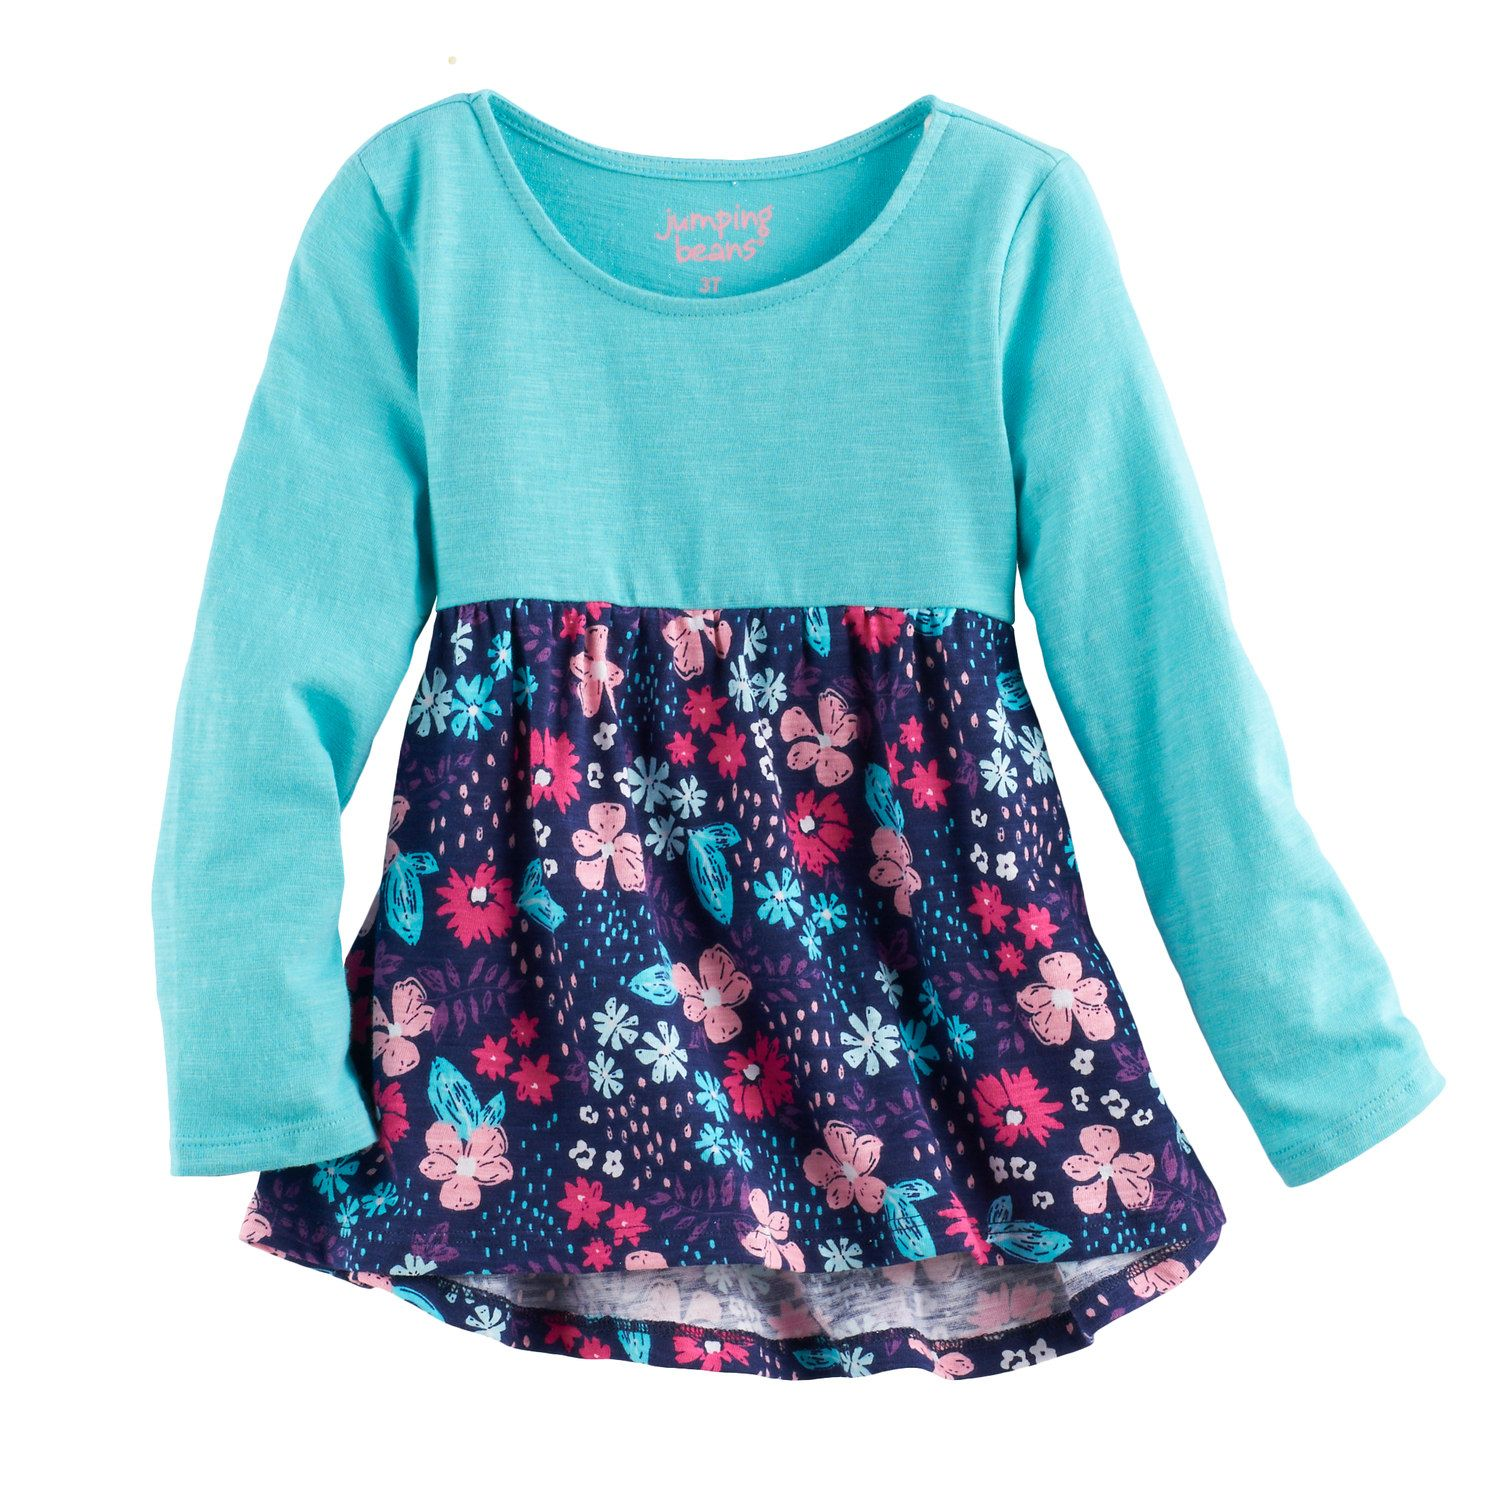 0a3df01c7 Toddler Girl Jumping Beans® Print Long Sleeve High-Low Hem Tunic ...